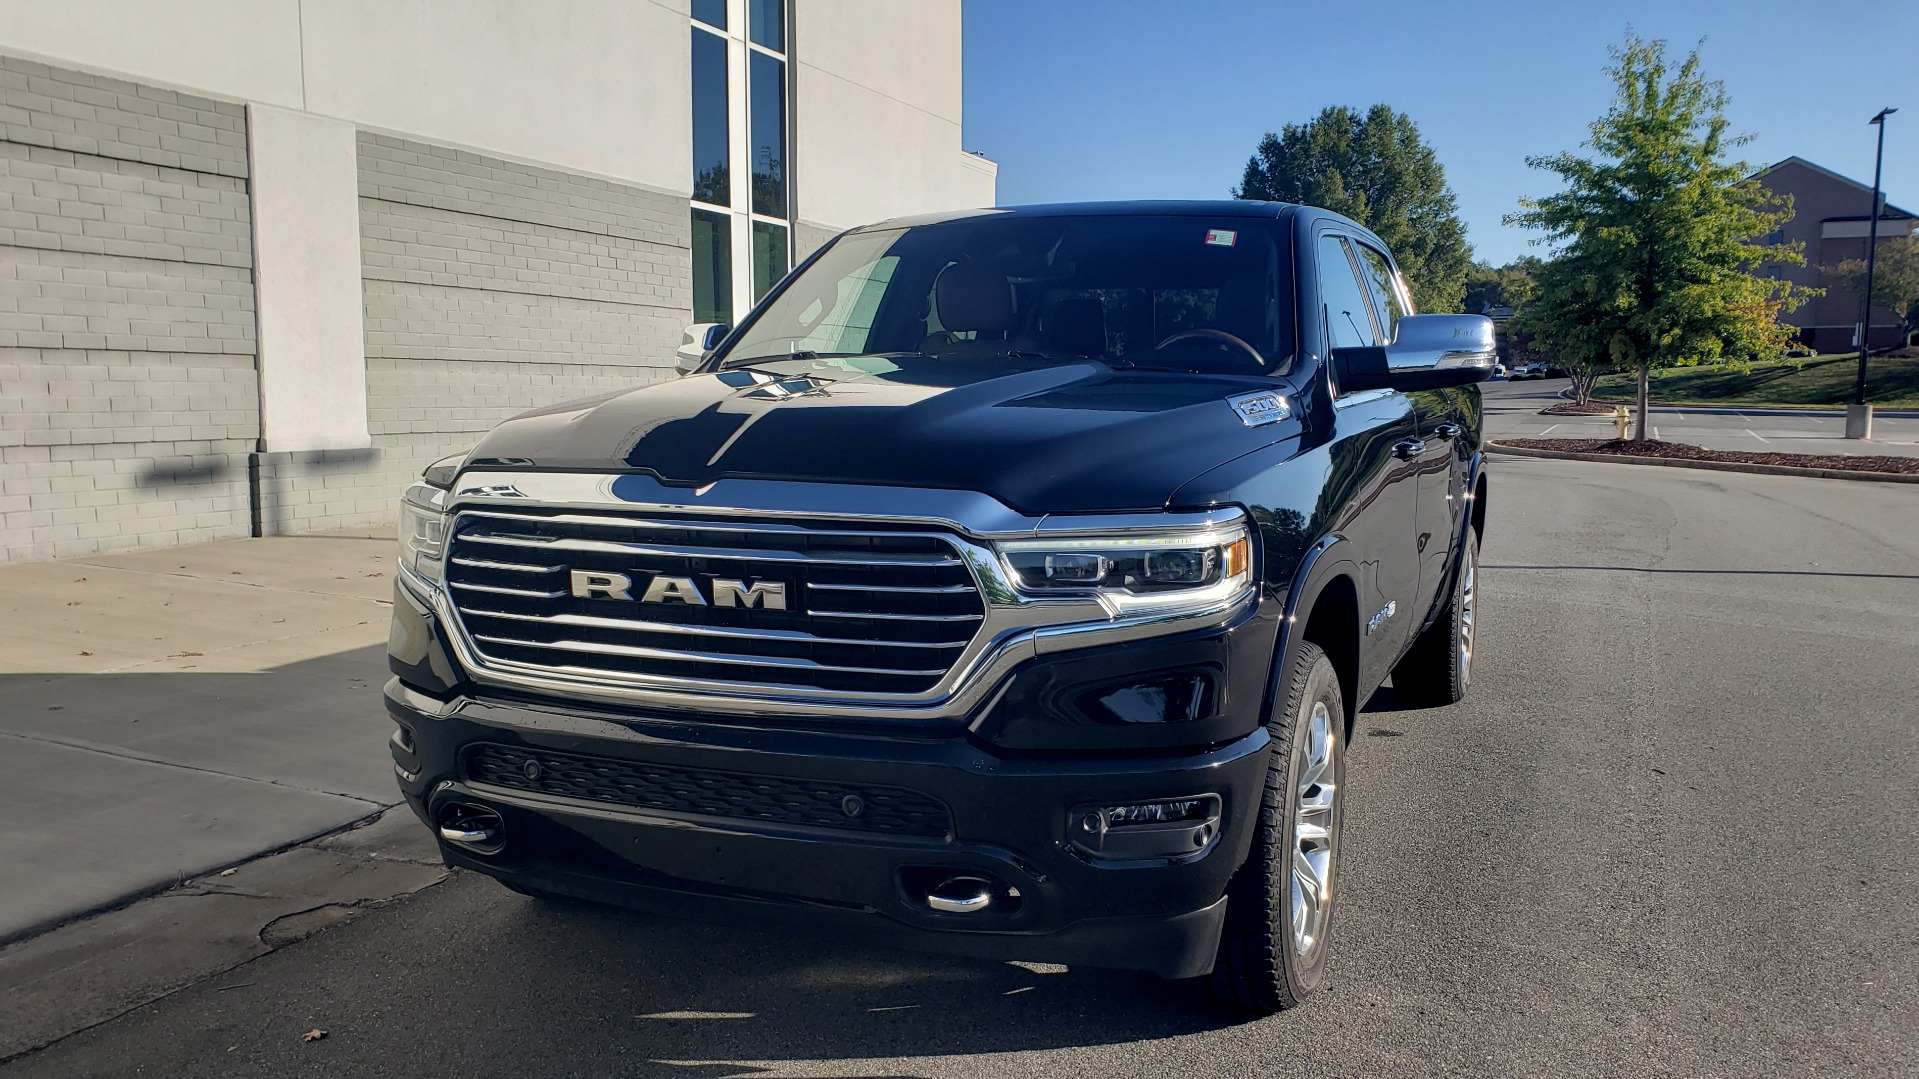 Used 2021 Ram 1500 LONGHORN LIMITED 4X4 / 5.7L HEMI / CREWCAB / H/K SND / PANO-ROOF / REARVIEW for sale $65,999 at Formula Imports in Charlotte NC 28227 2